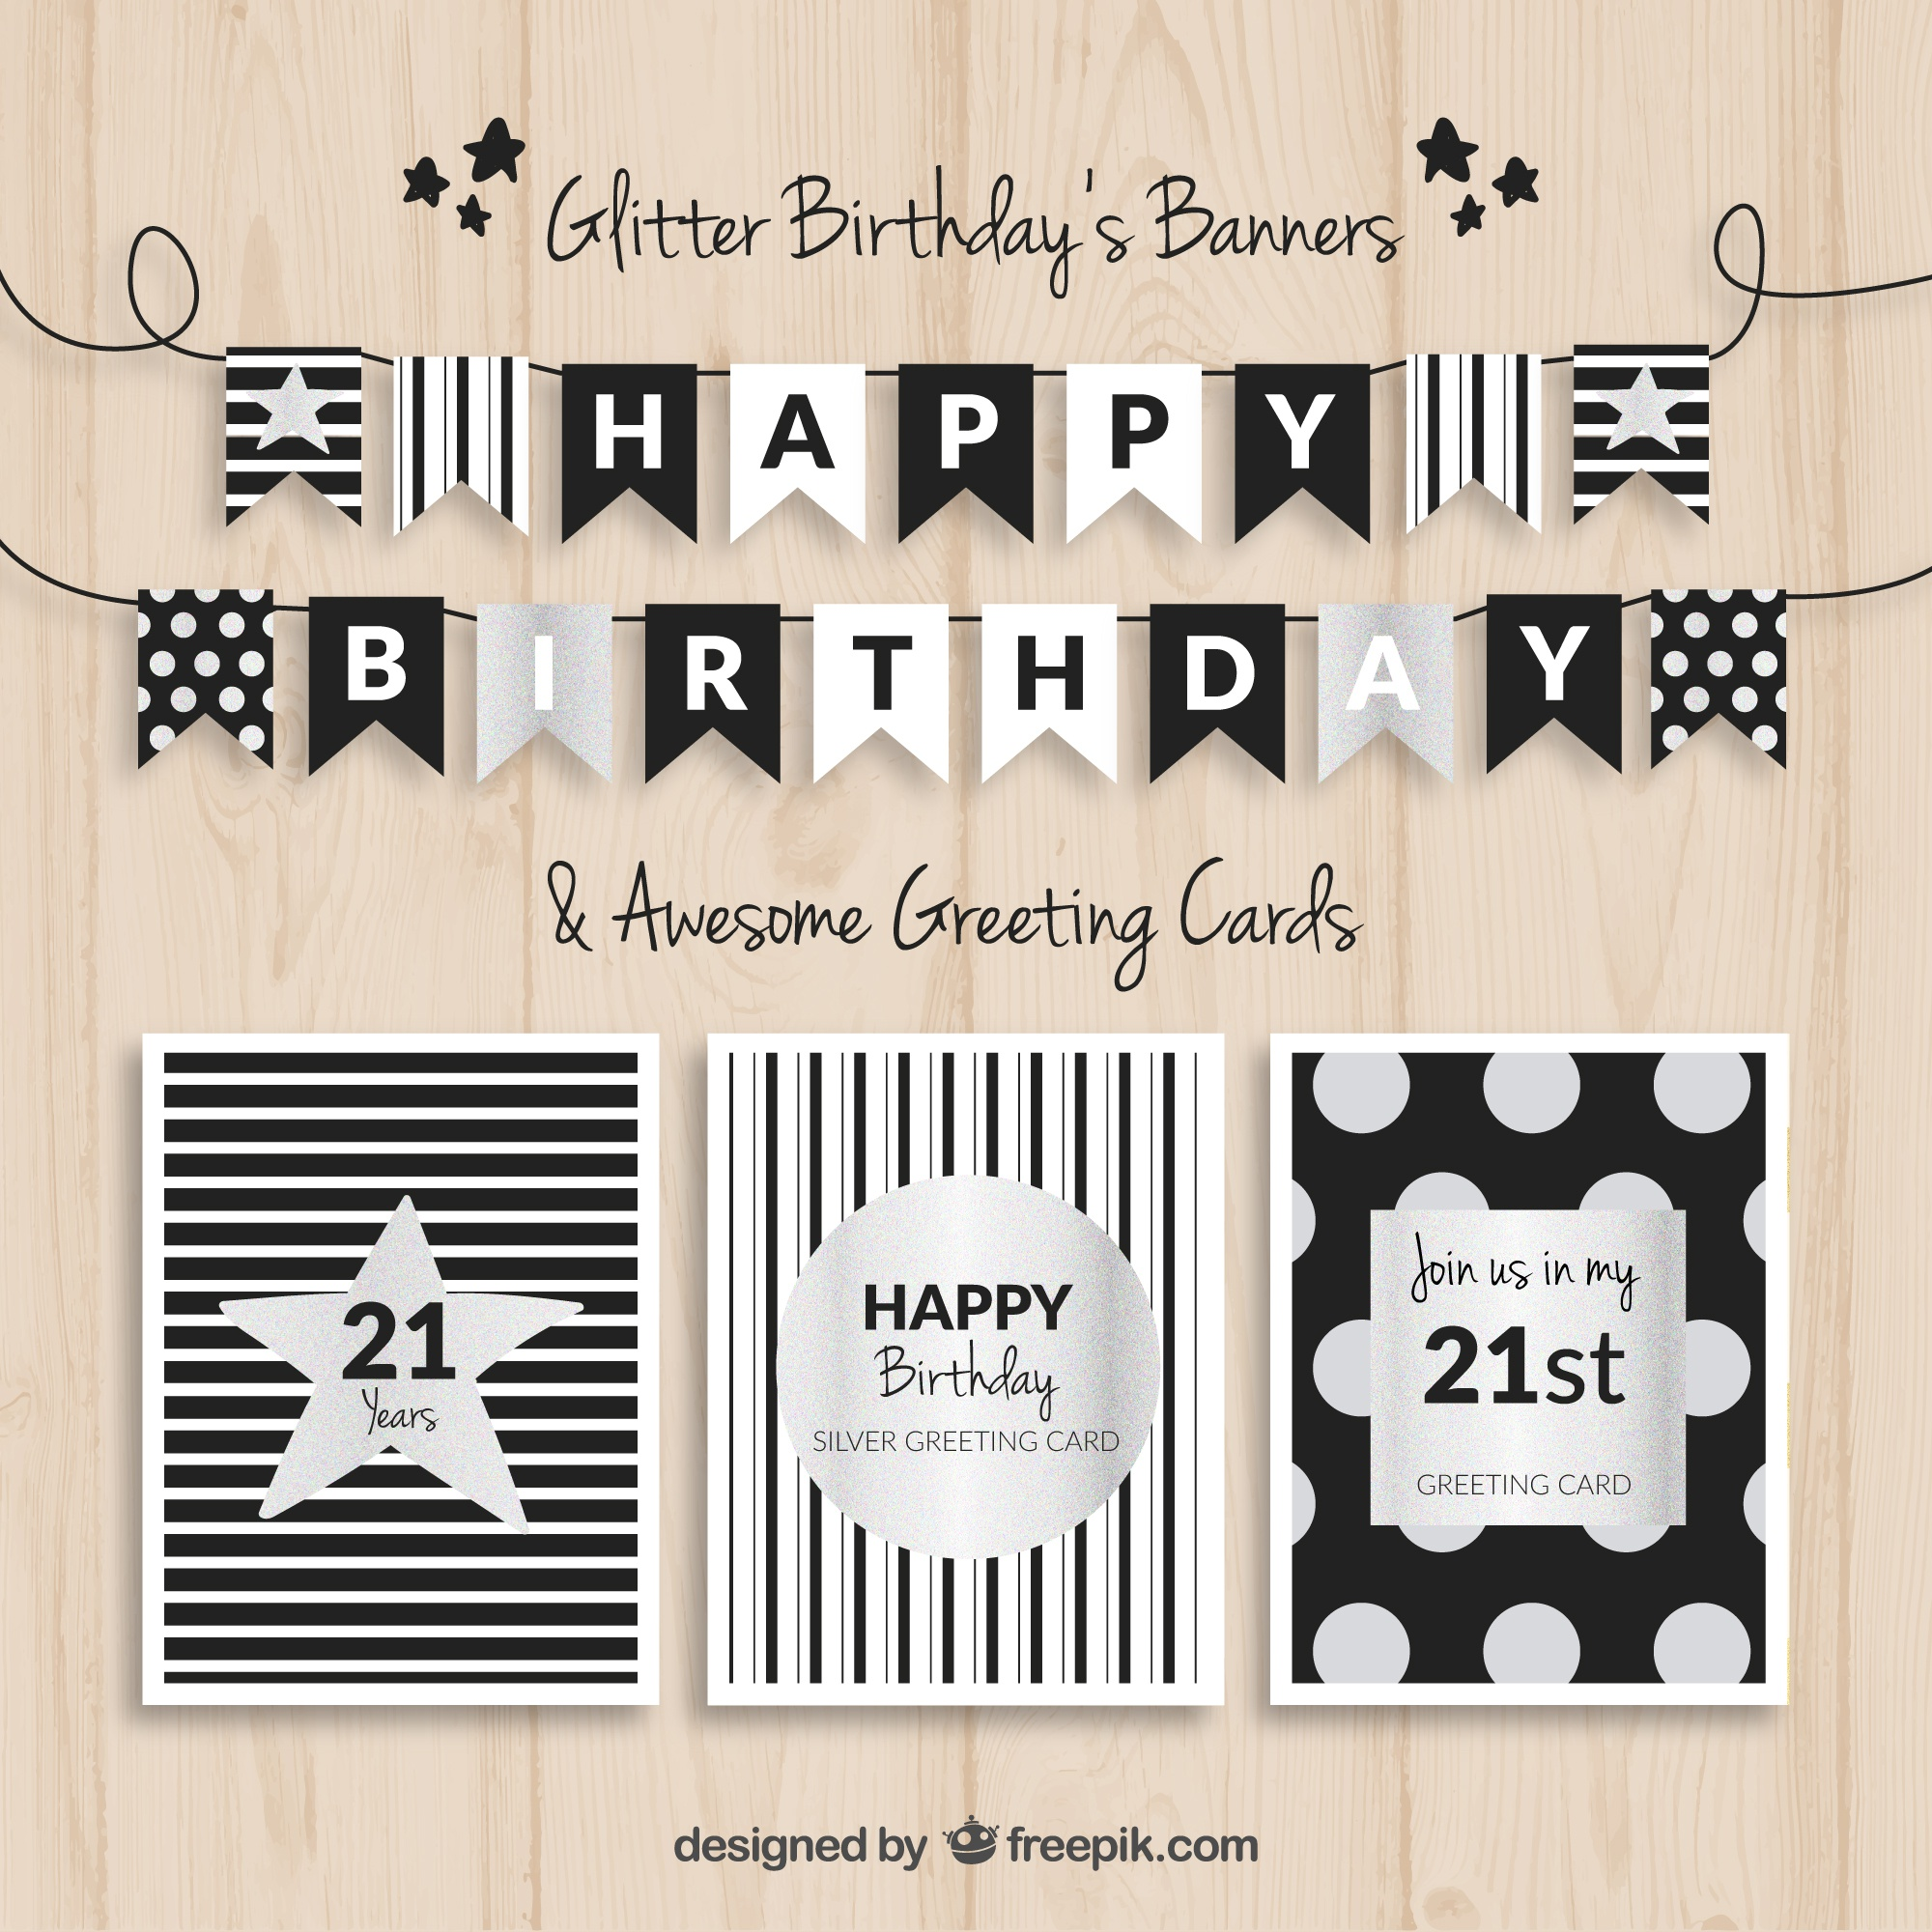 Birthday banners and cards black and silver